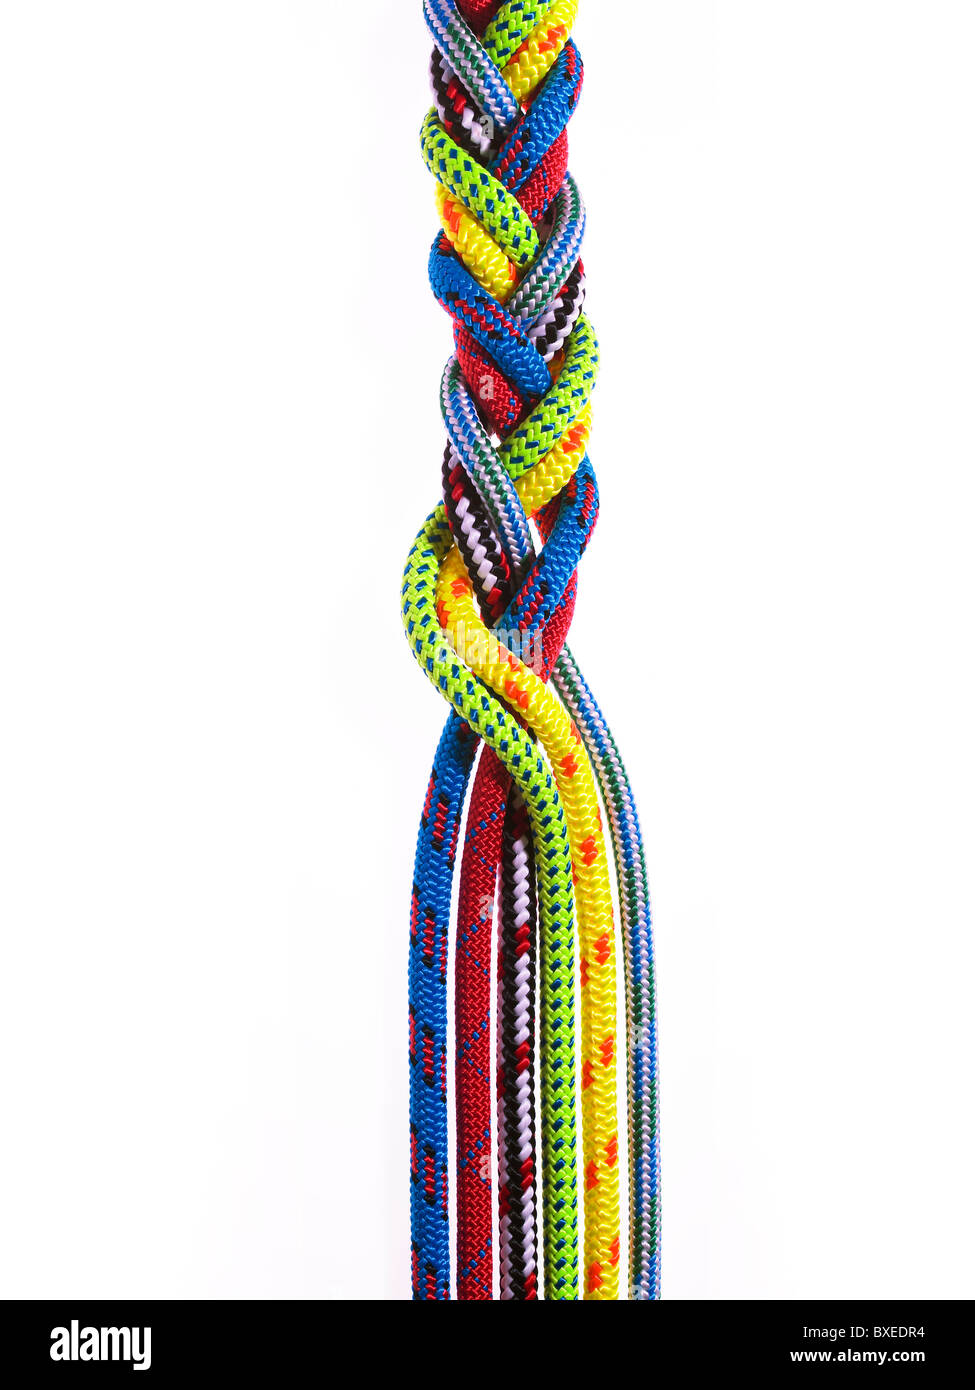 Braid of colorful rope - Stock Image